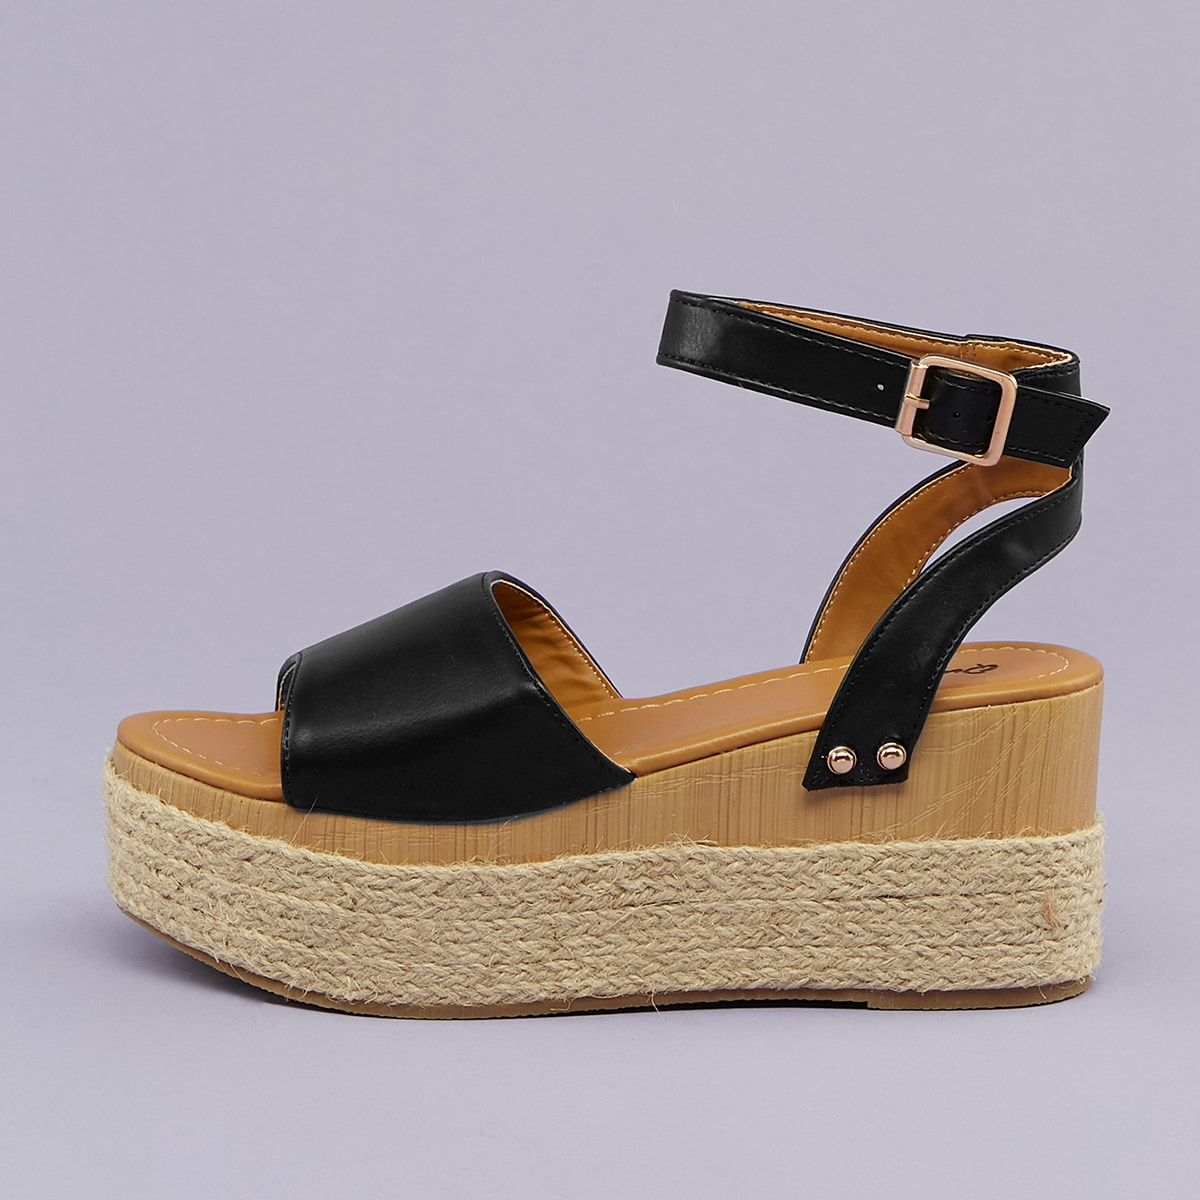 SHEIN / Open Toe Ankle Strap Espadrille Wedge Sandals